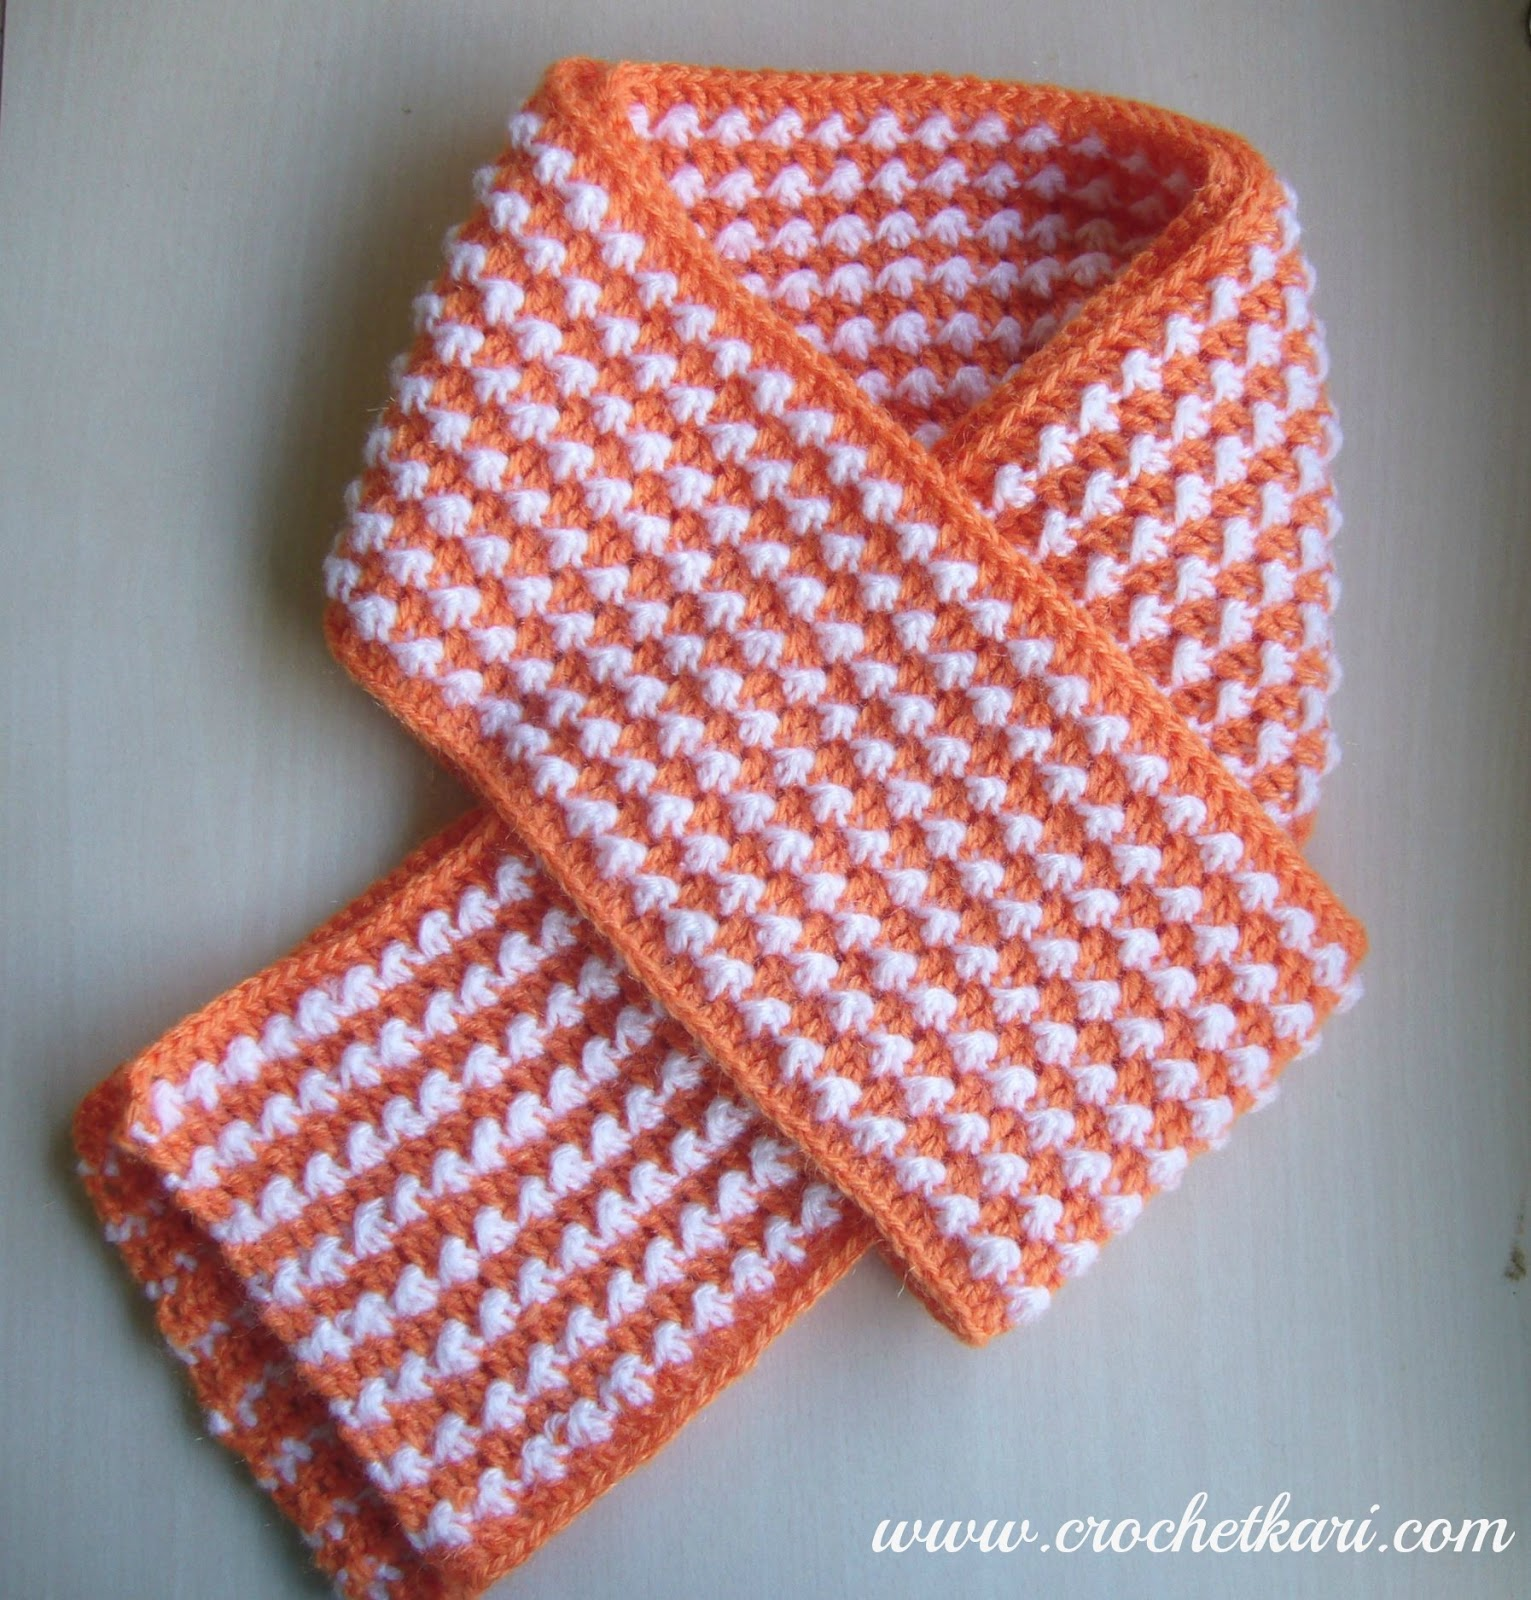 crochet orange scarf crochetkari